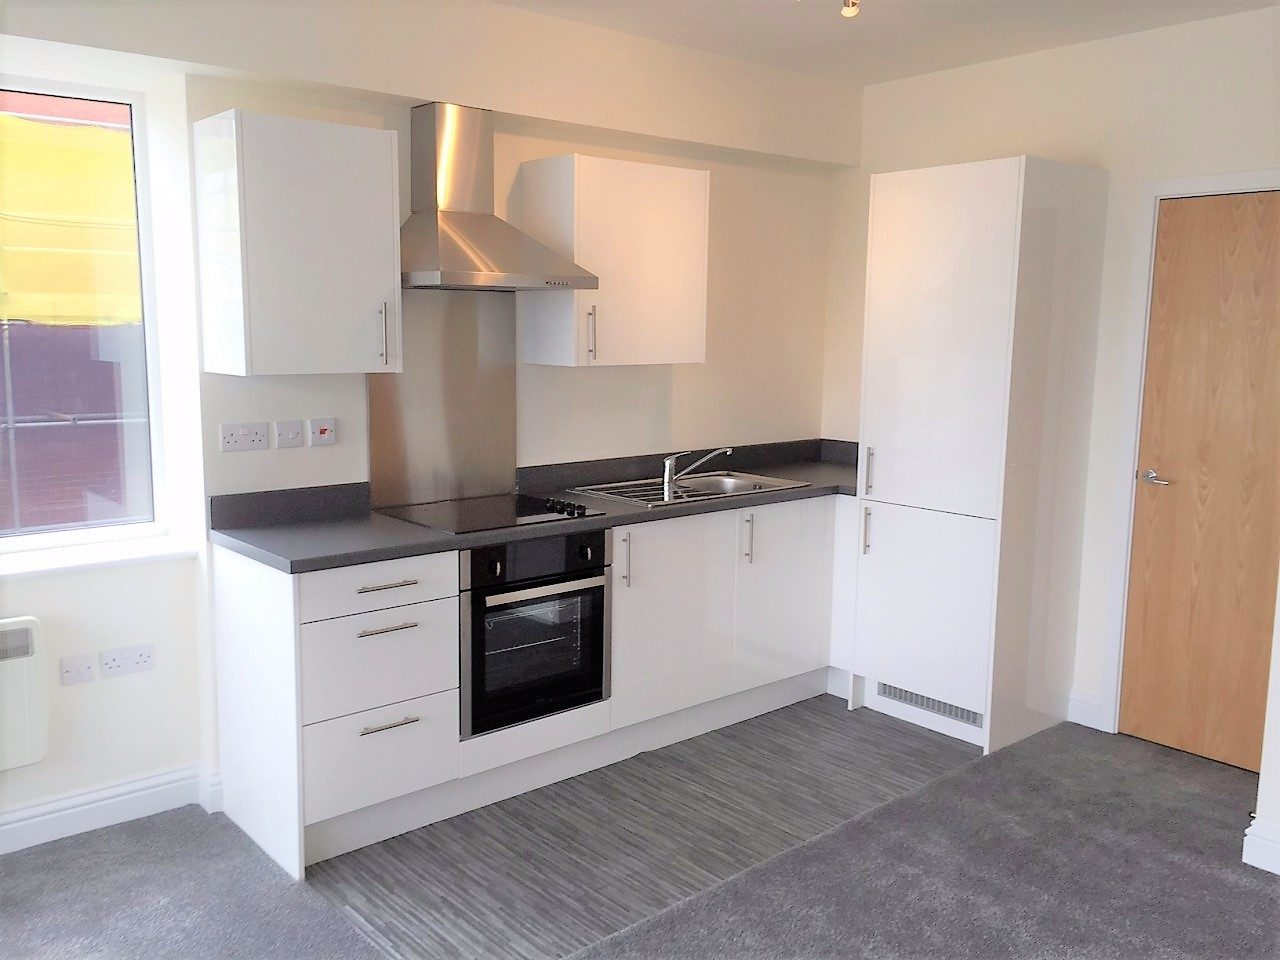 Brand New Studio Apartment To Let In The Heart Of Swindon